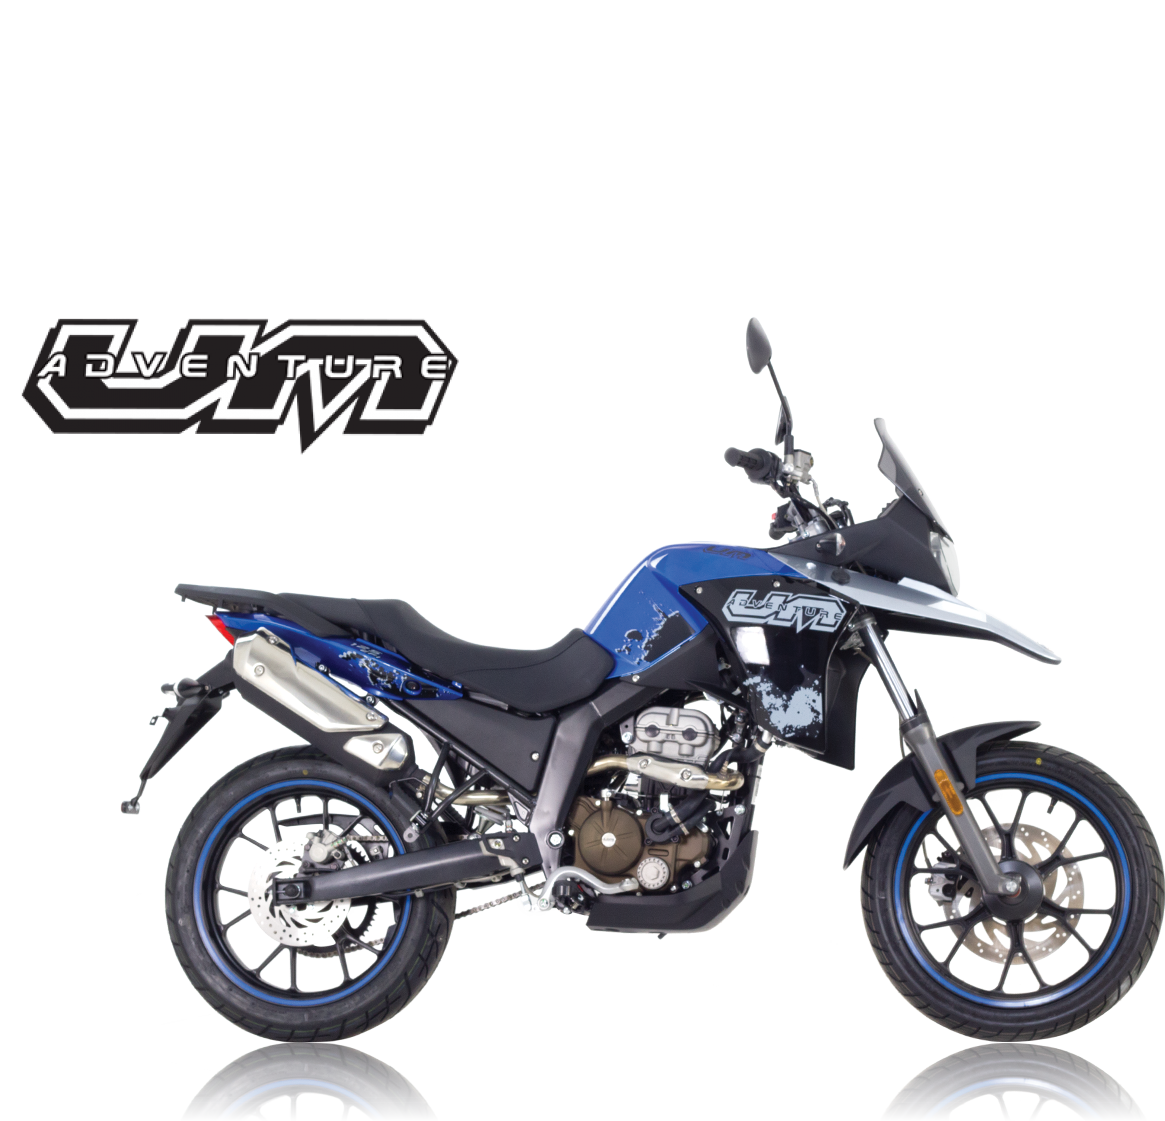 Lexmoto Dealer Network Operated By The Uk S Largest